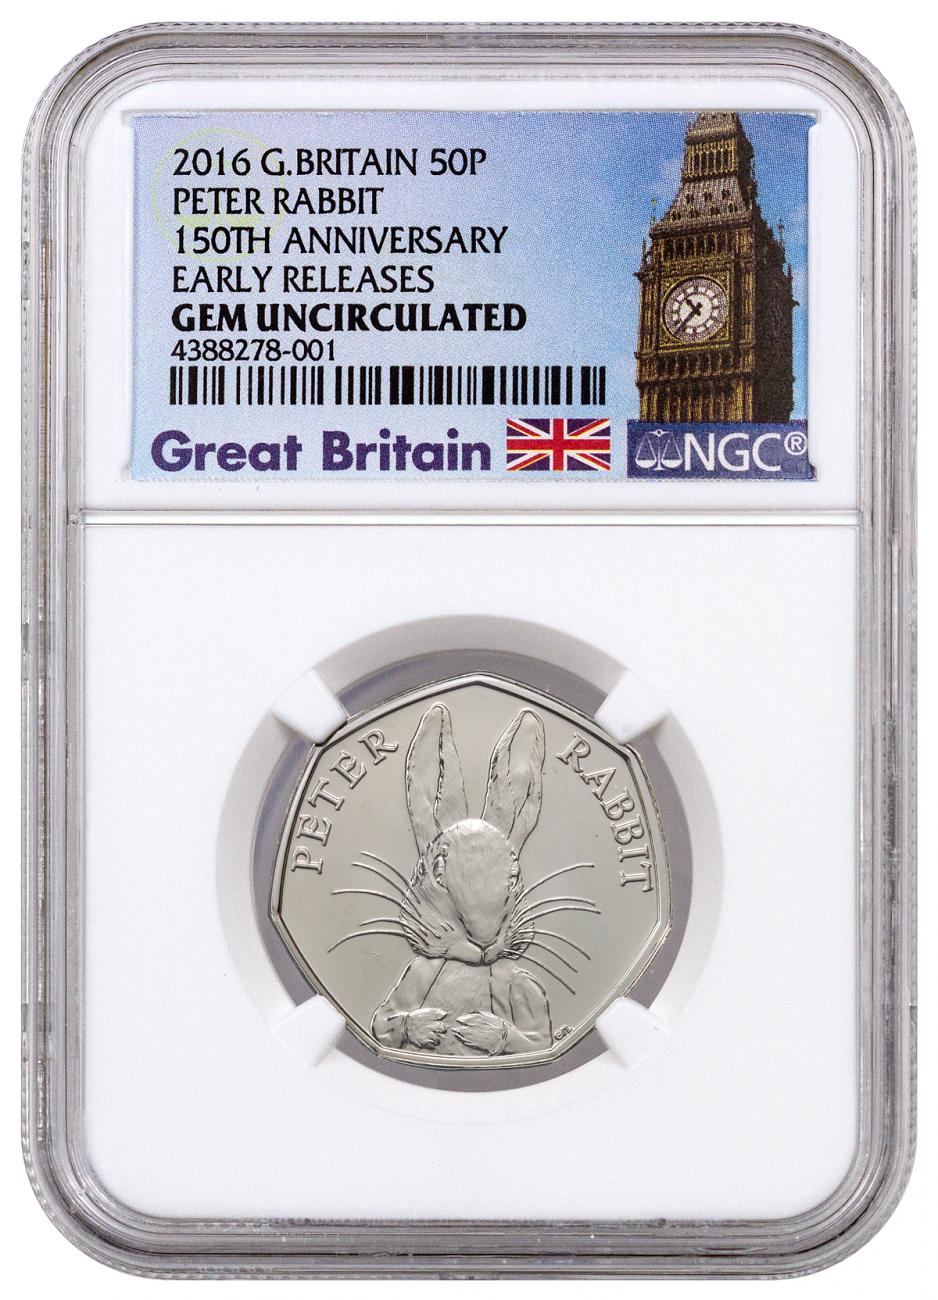 2016 Great Britain 50p Clad 150th Anniversary of Beatrix Potter - Peter Rabbit - NGC GEM BU Early Releases (Exclusive Great Britain Label)